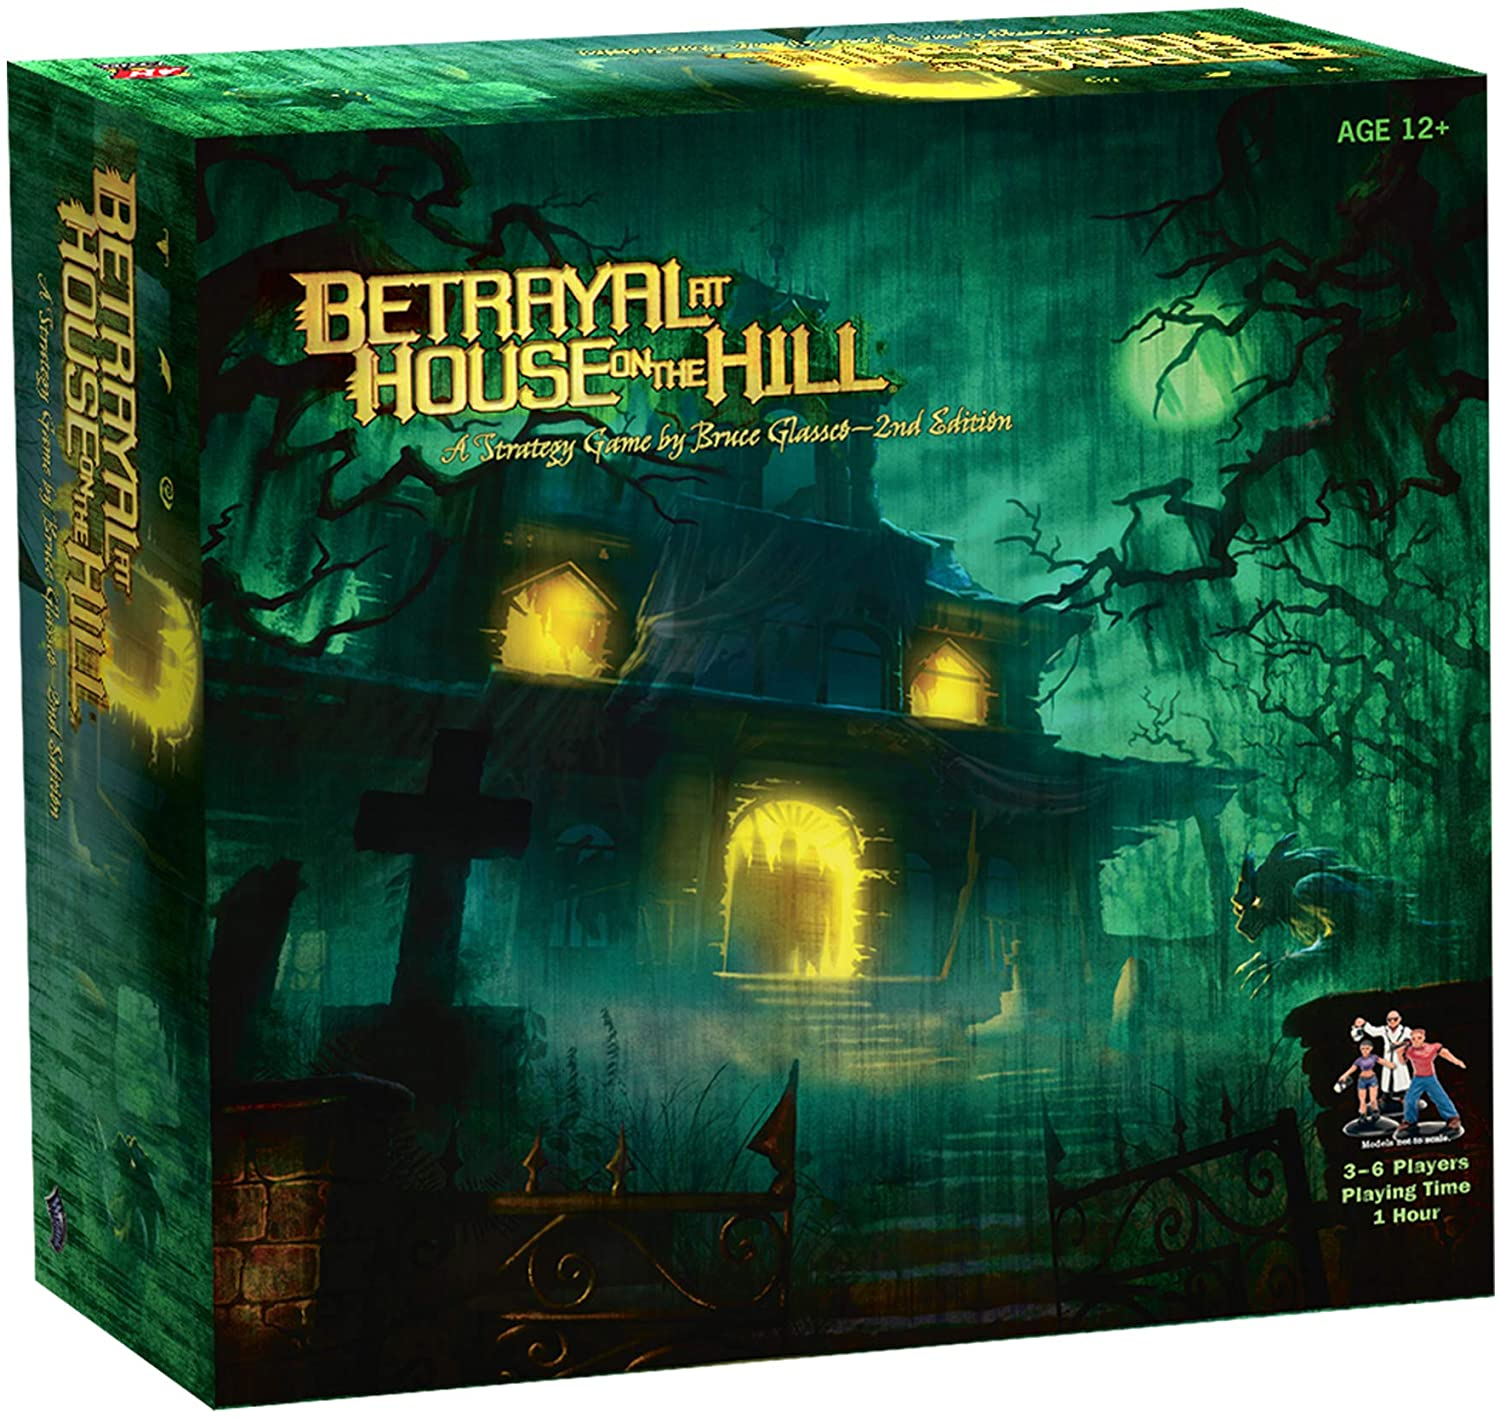 house of the hill board game